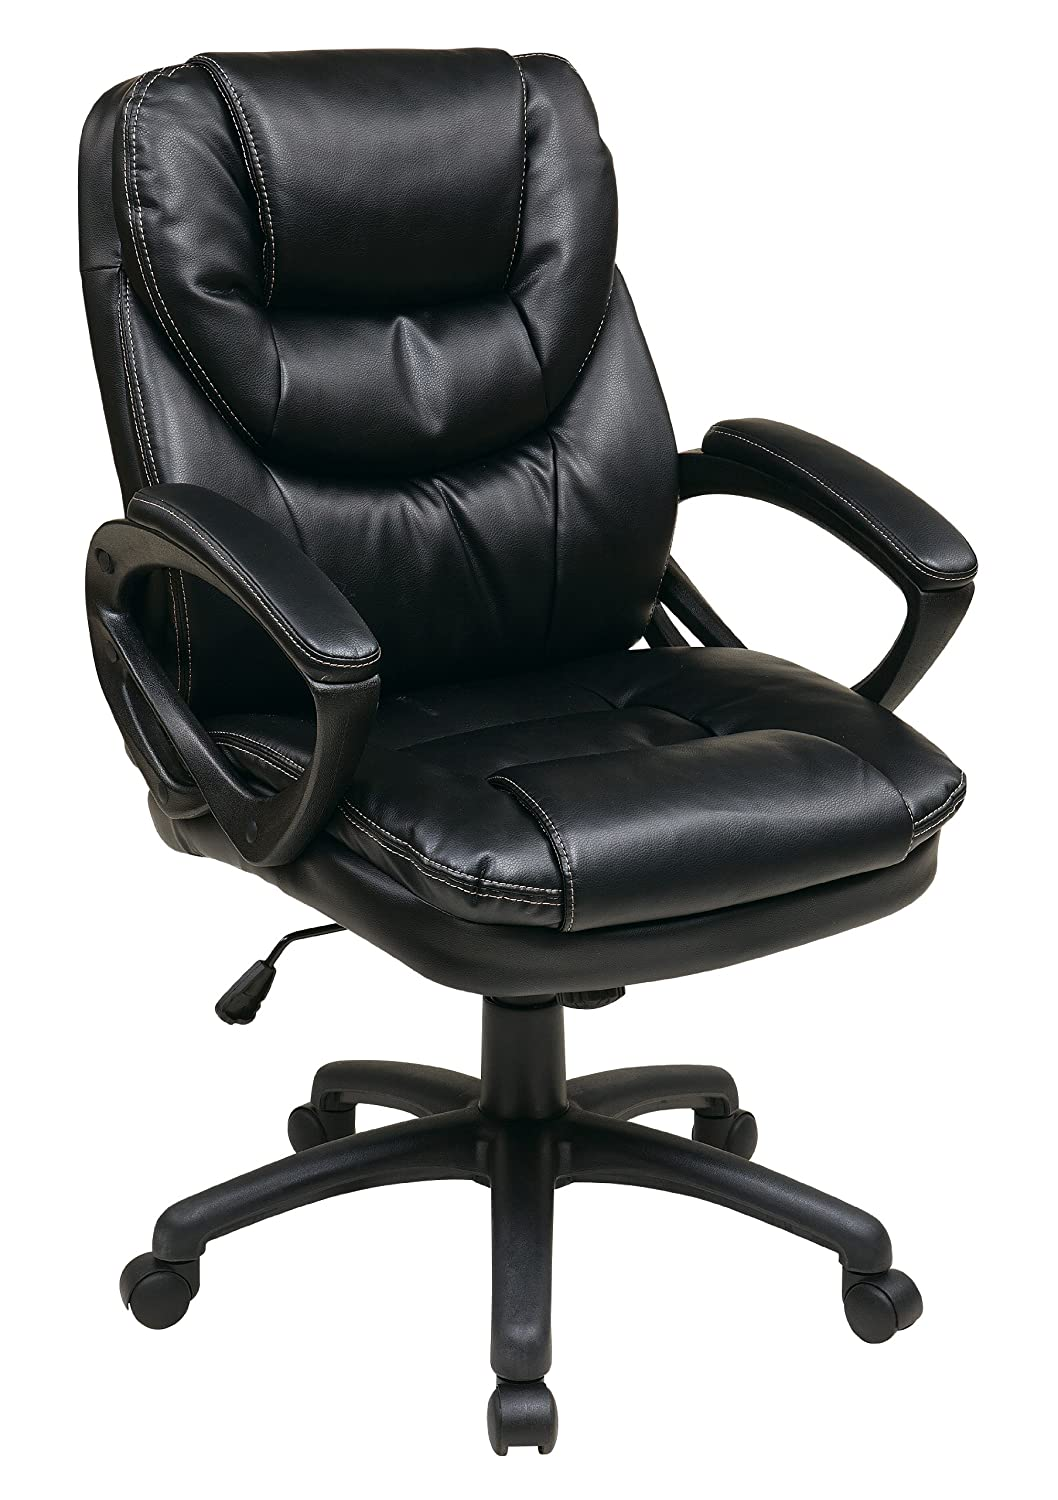 Best Desk Chair For Back Support Best Office Chair For Lumbar Support Reviews And Comparison